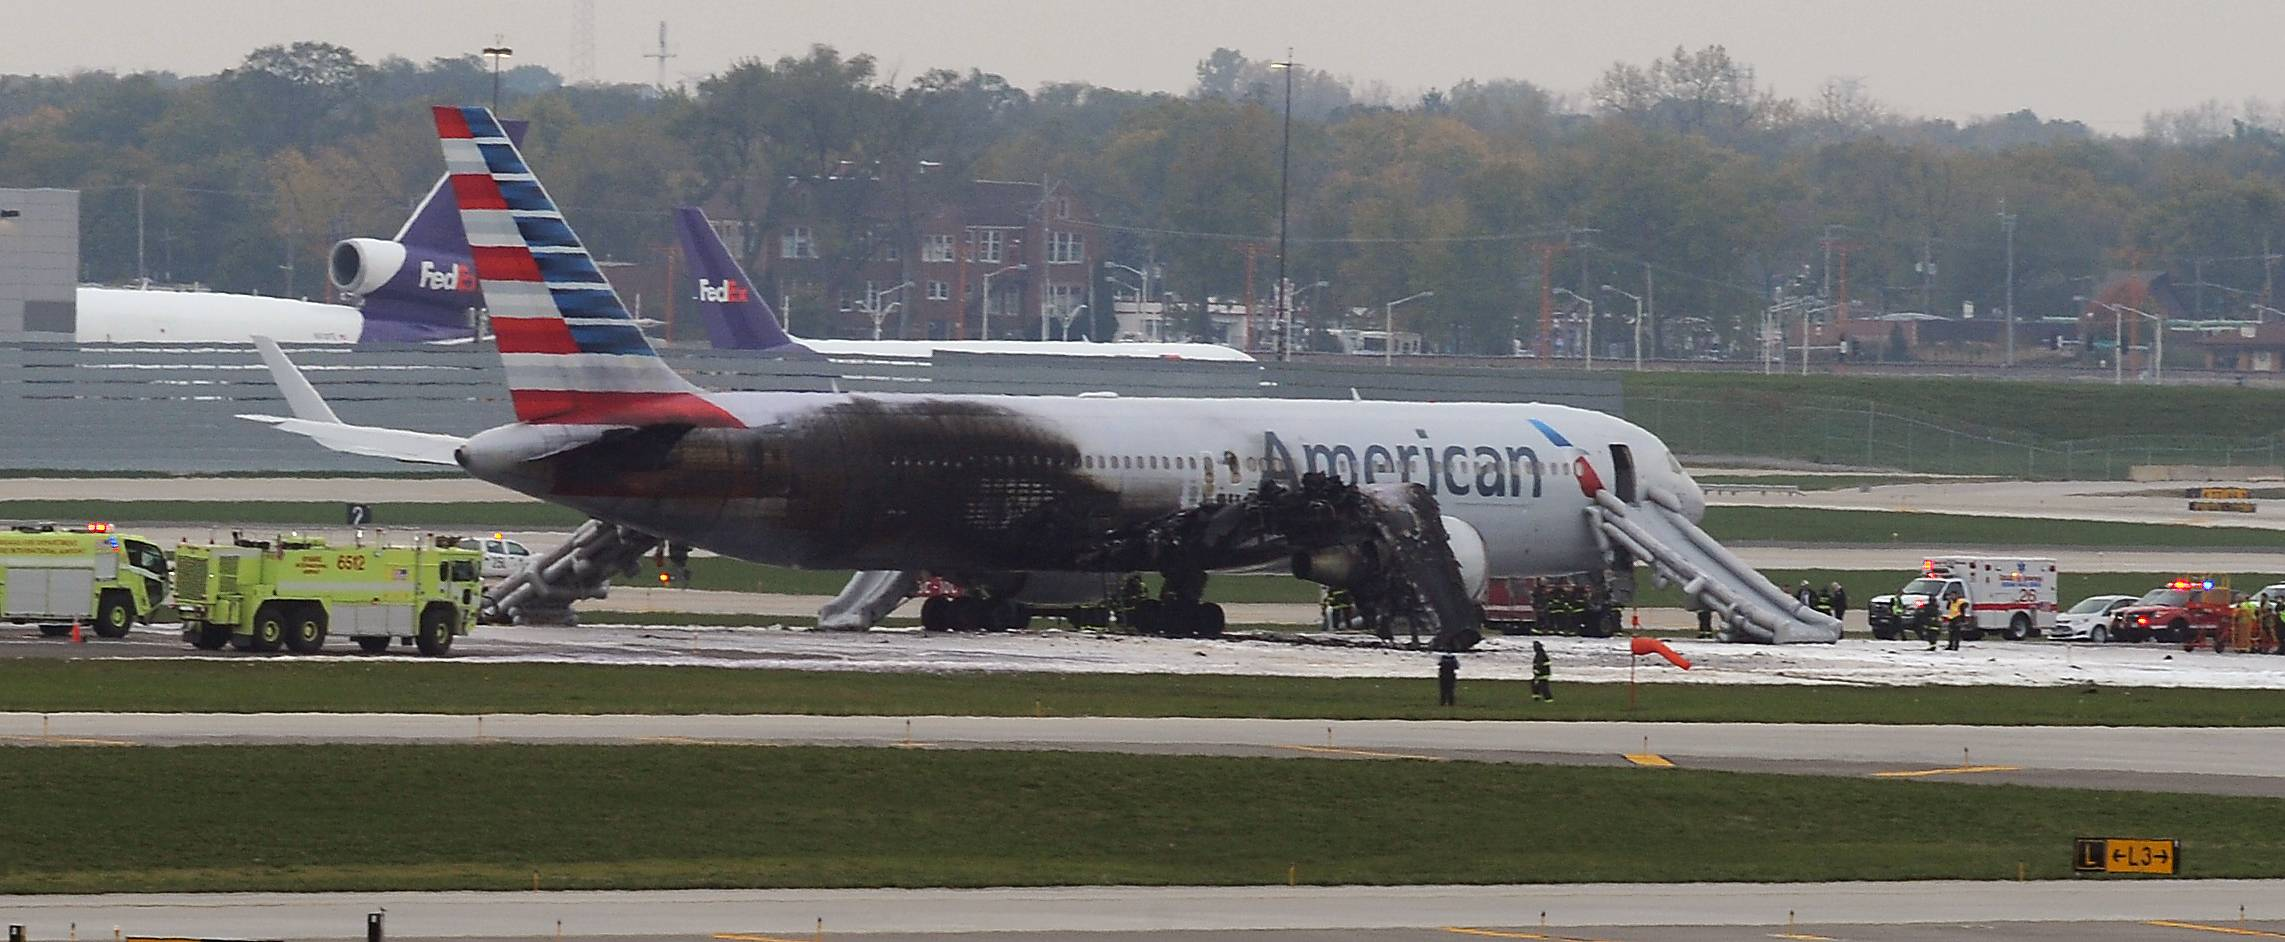 An American Airline plane reveals fire damage on Runway 28R at Chicago O'Hare International Airport.